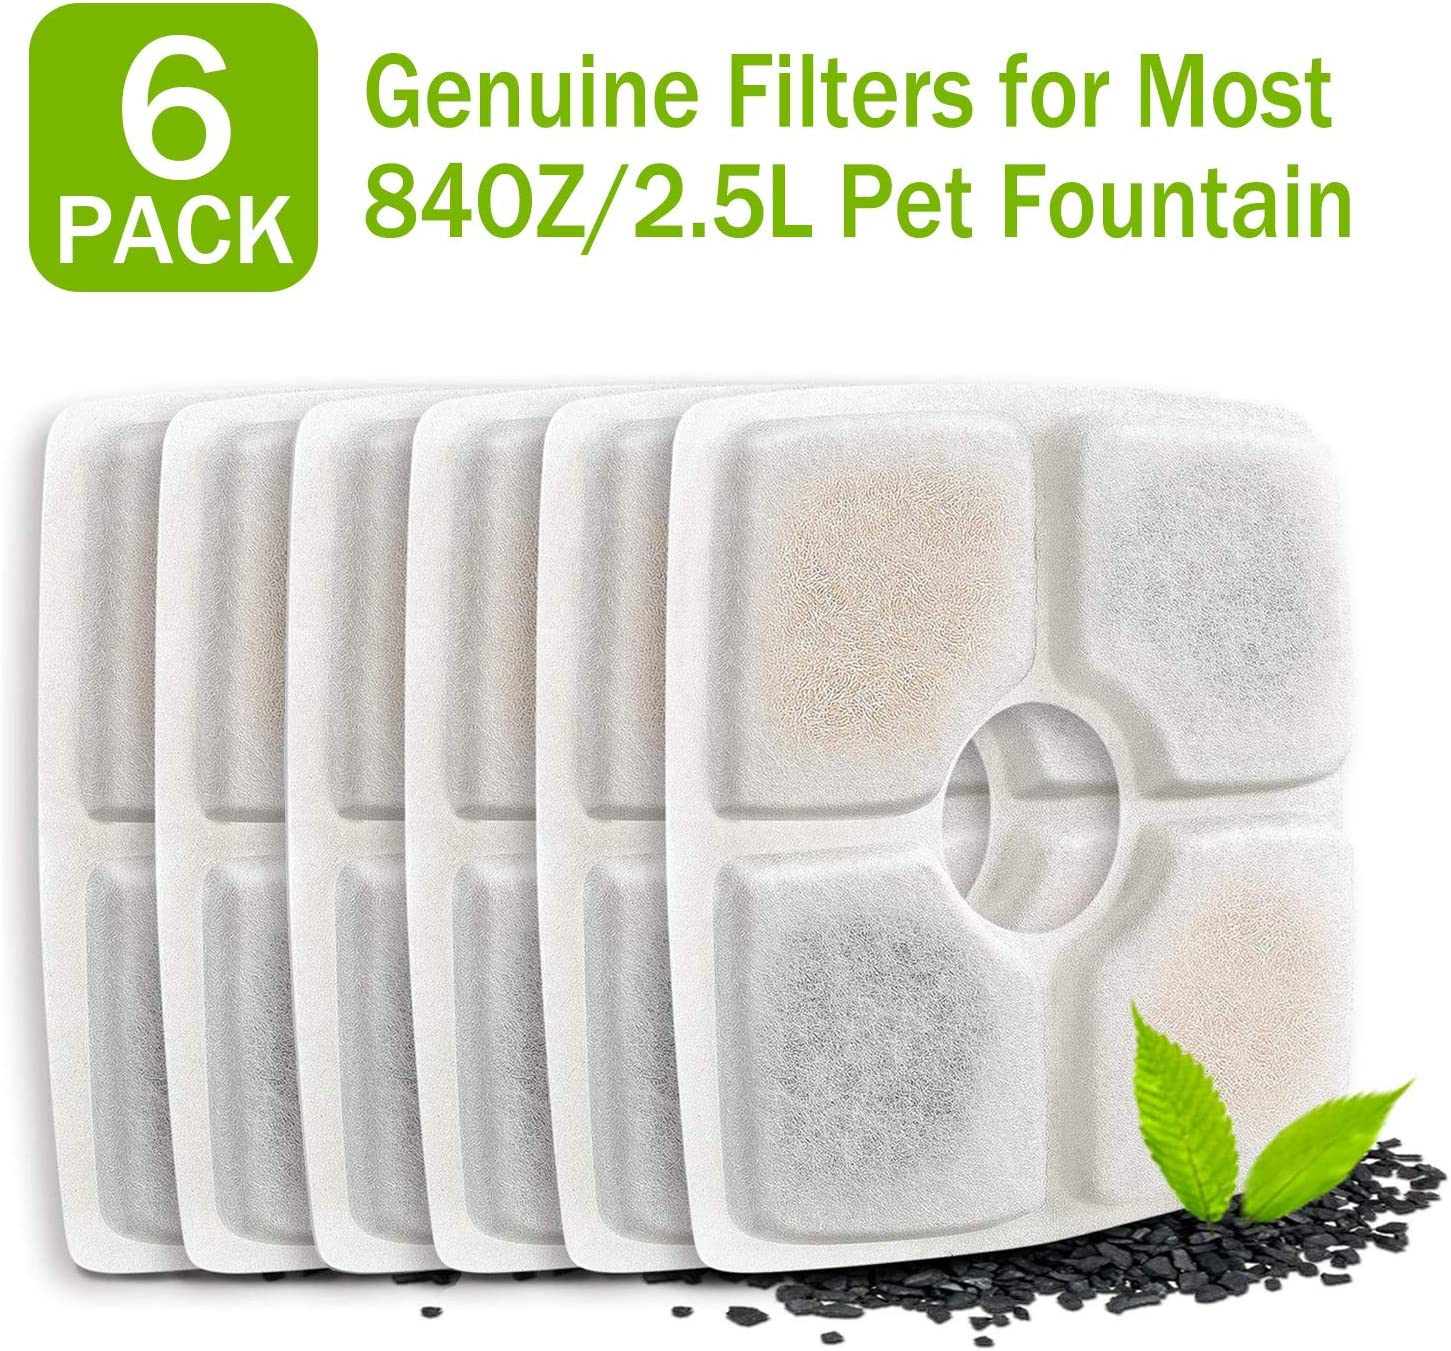 PG.KINWANG Pet Fountain Filters Replacement for 84oz/2.5L Automatic Pet Fountain Cat Water Fountain Dog Water Dispenser, Ion Exchange Resin and Coconut Activated Carbon,Pack of 6